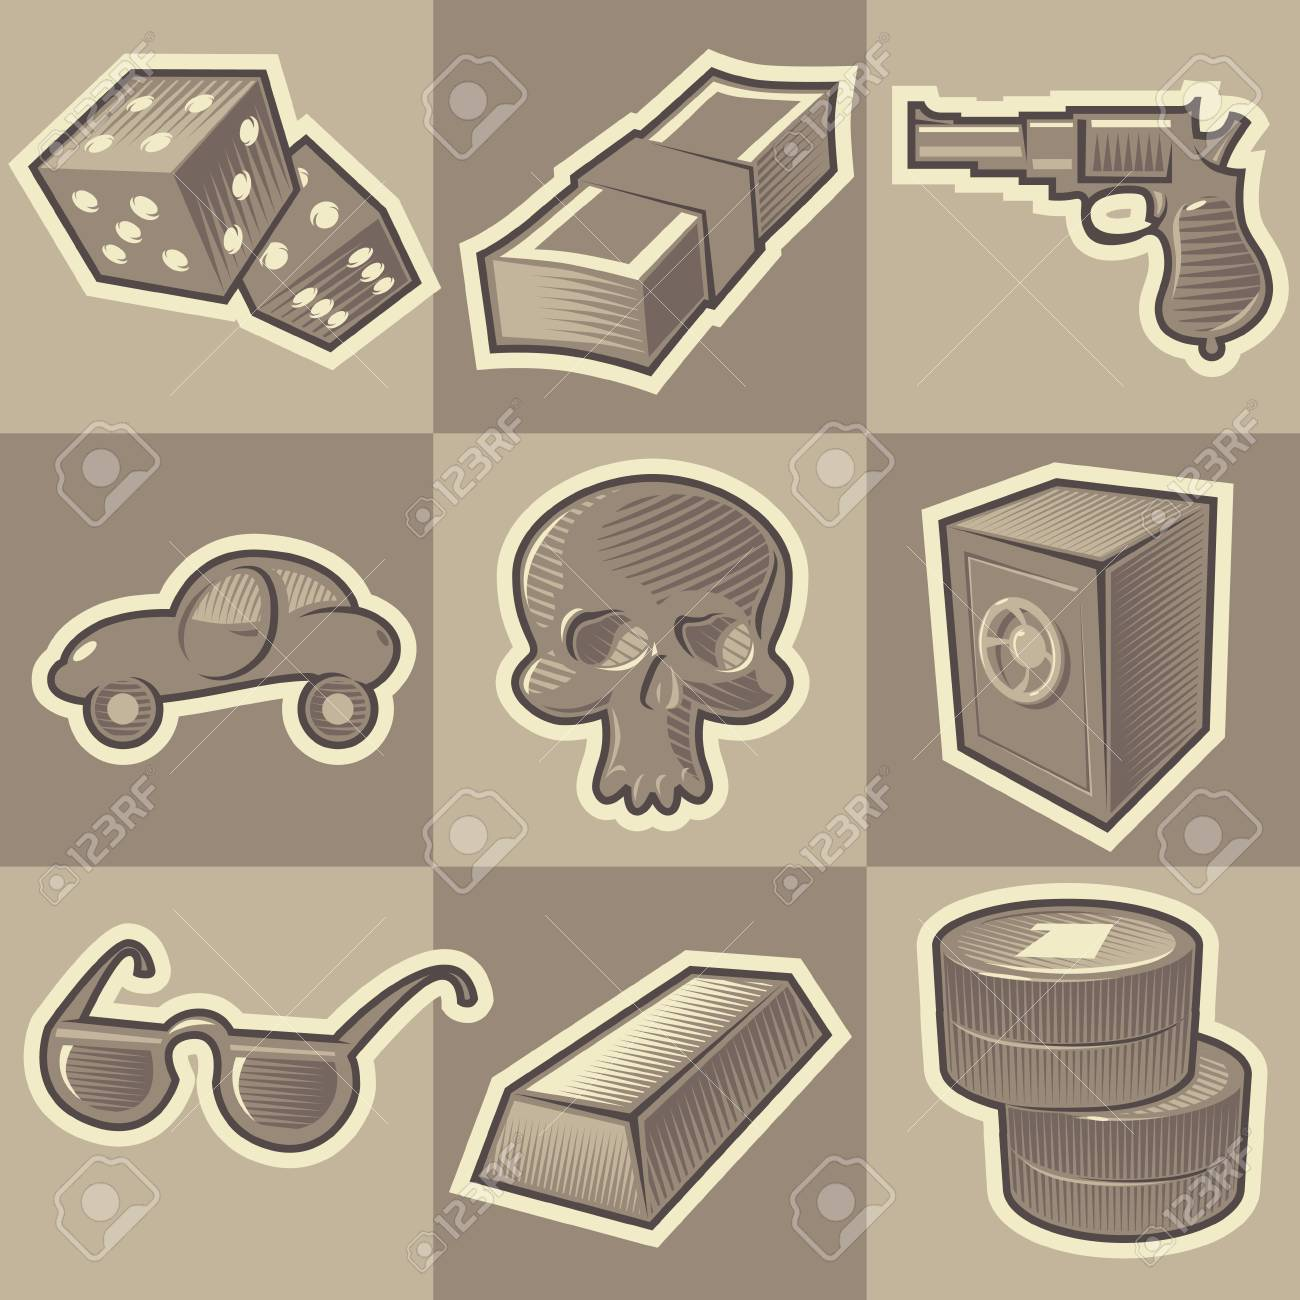 Set of monochrome gangsta retro icons. Hatched in style of engraving. Vector illustration. Stock Vector - 4499205